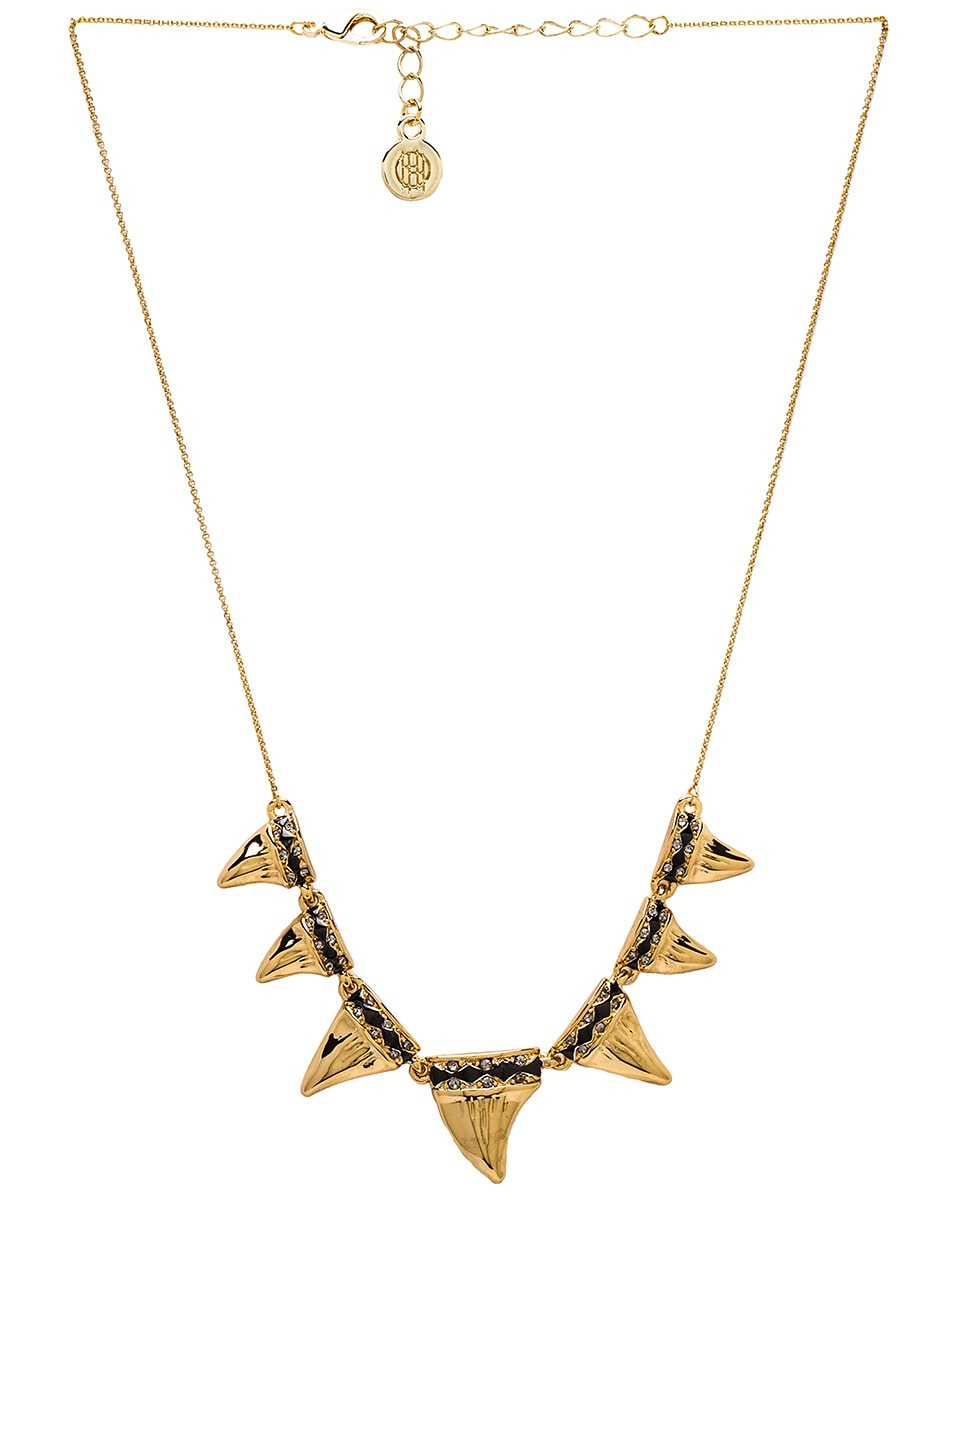 House of Harlow 1960 House of Harlow Diamondhead Necklace in Gold